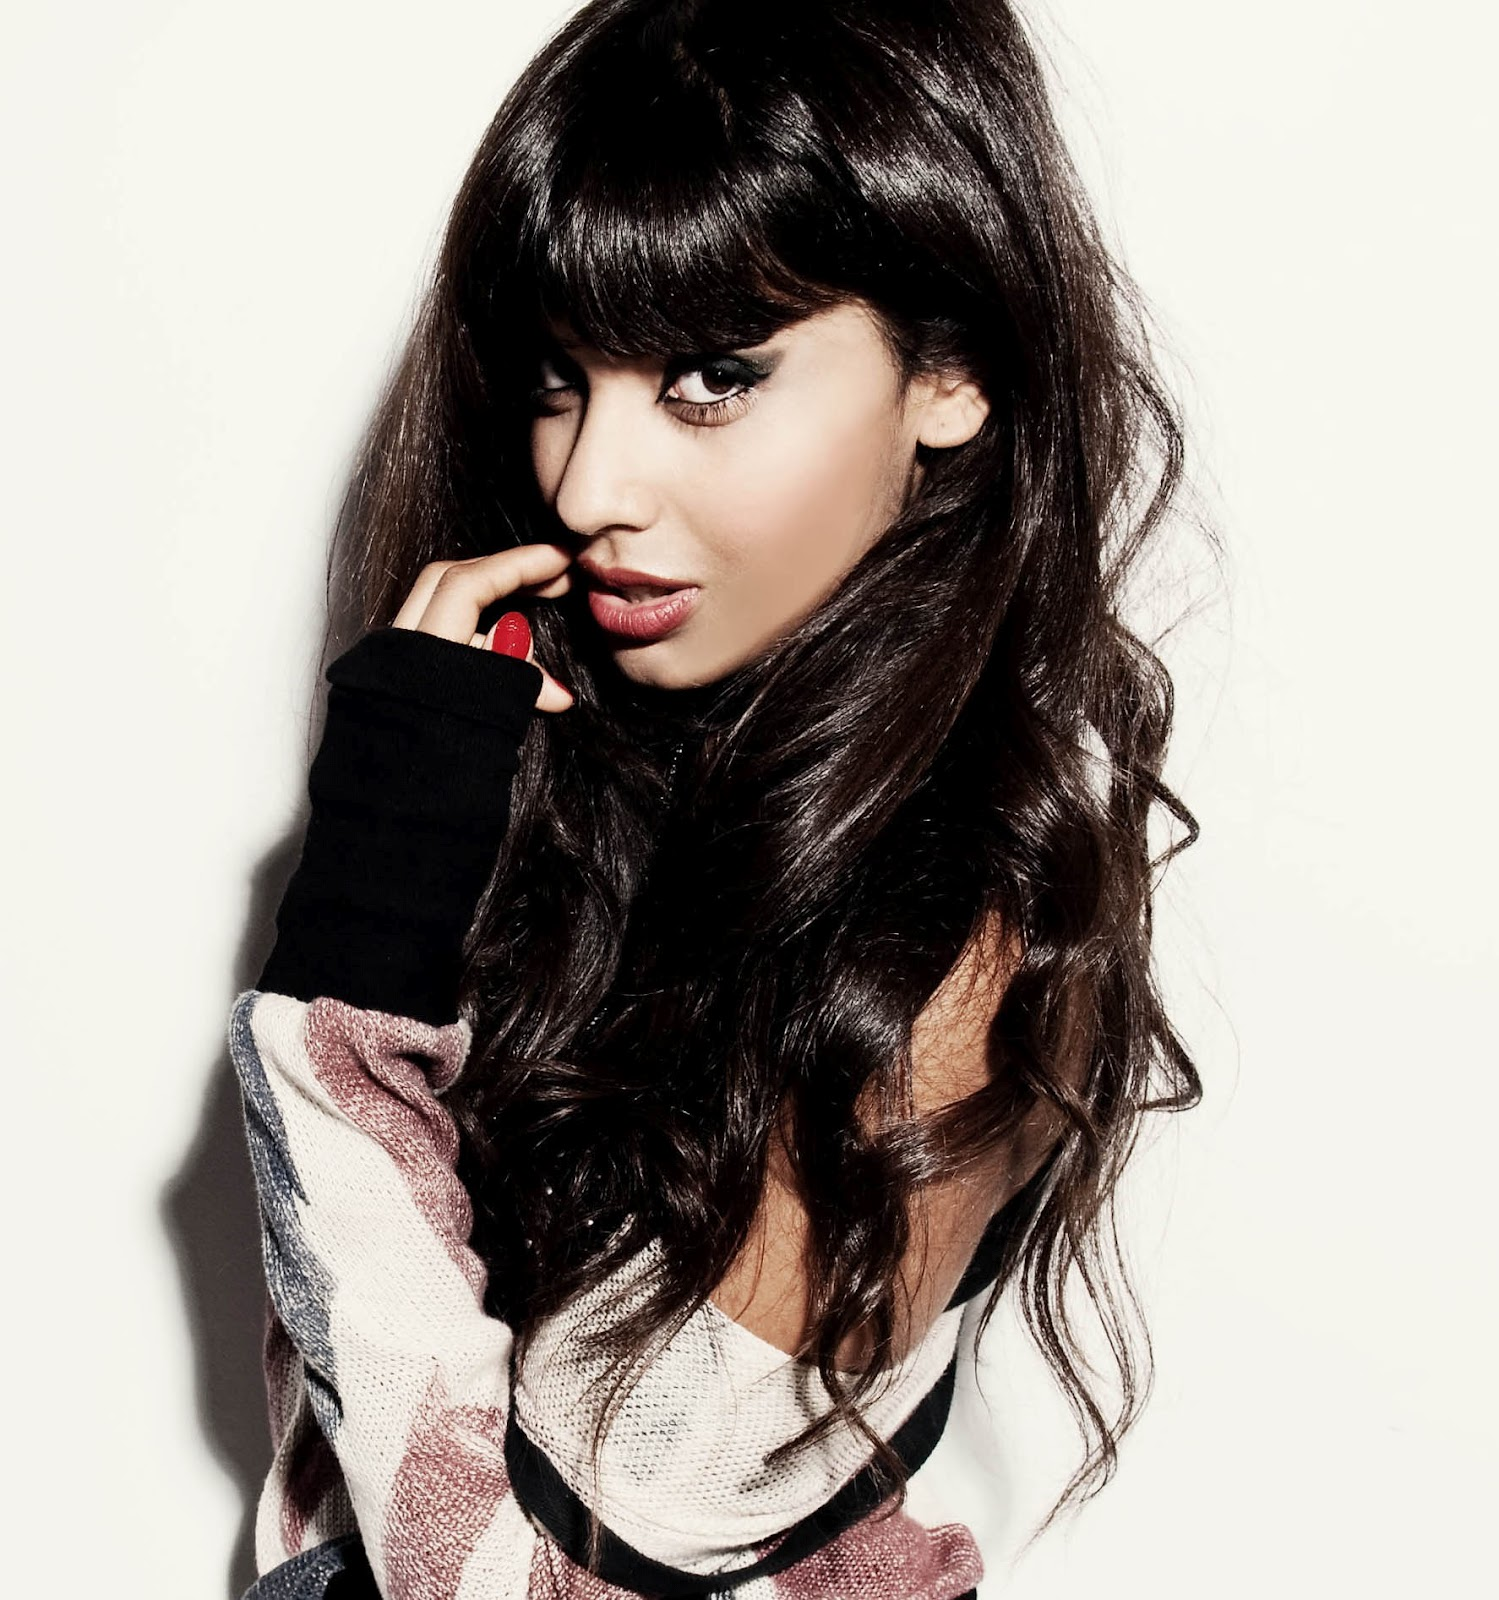 Jameela Jamil Is Not A Muslim